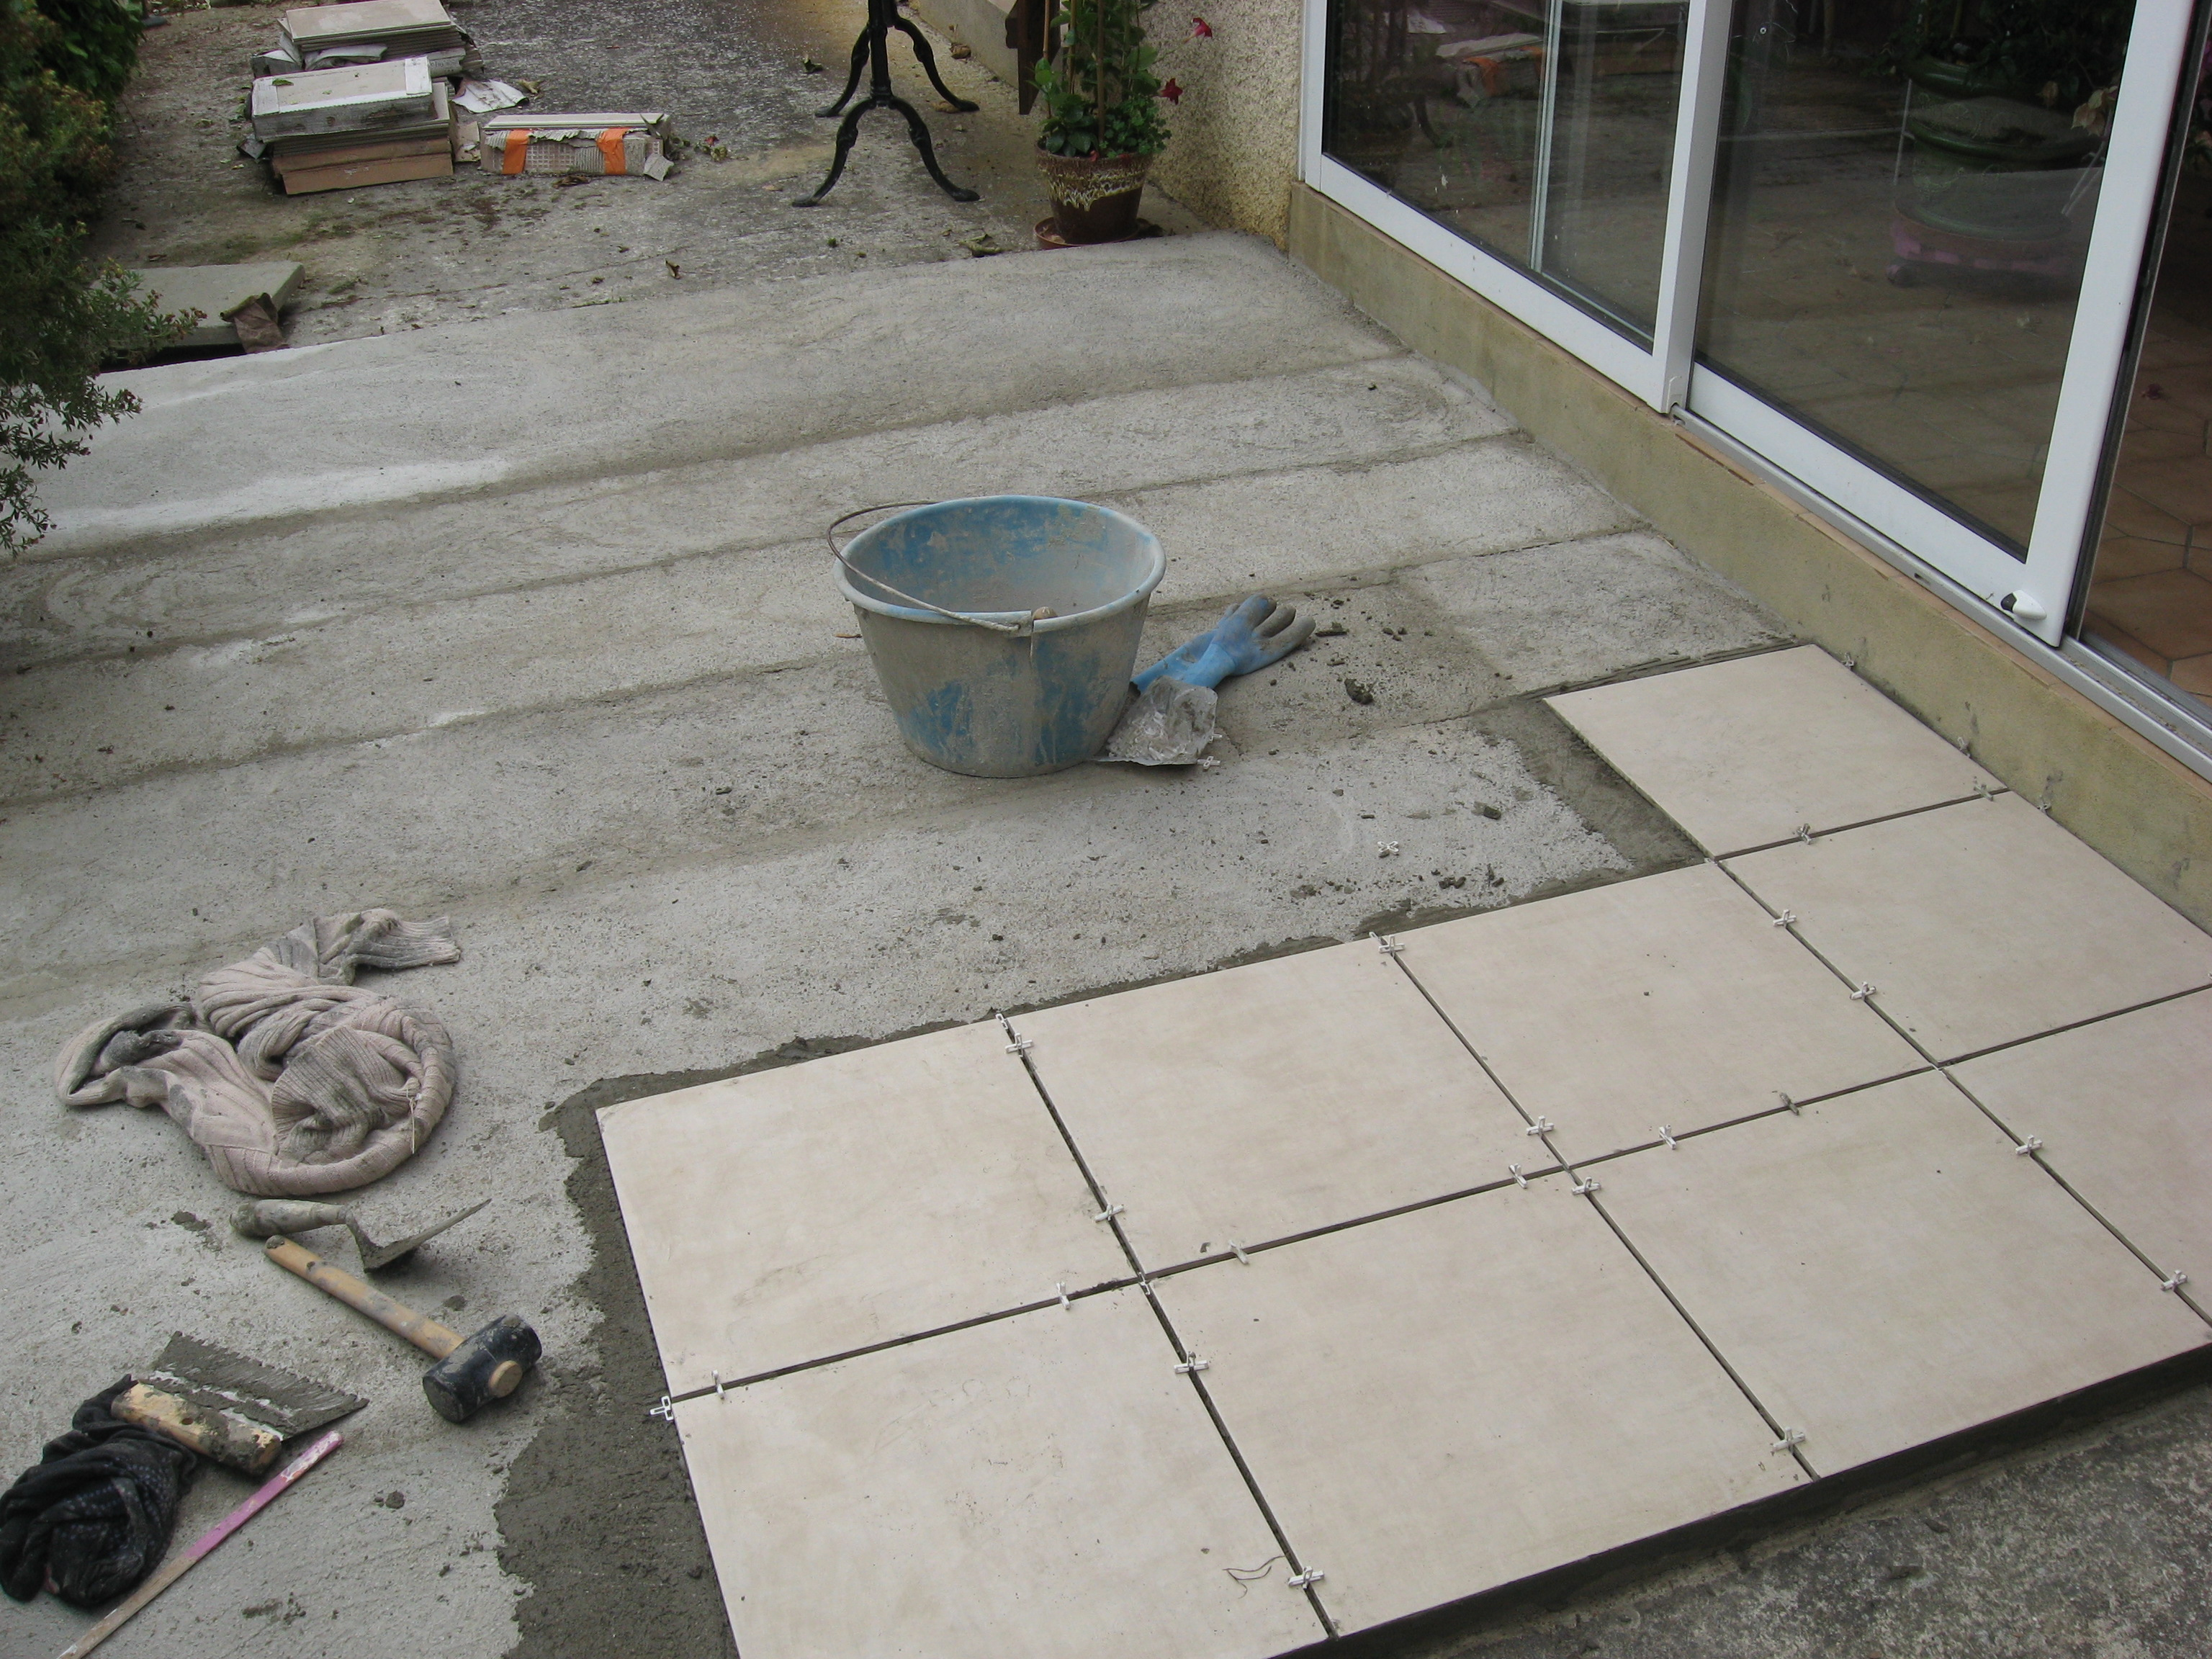 Carrelage sur terrasse nini d co for Peut on poser du carrelage sur du carrelage